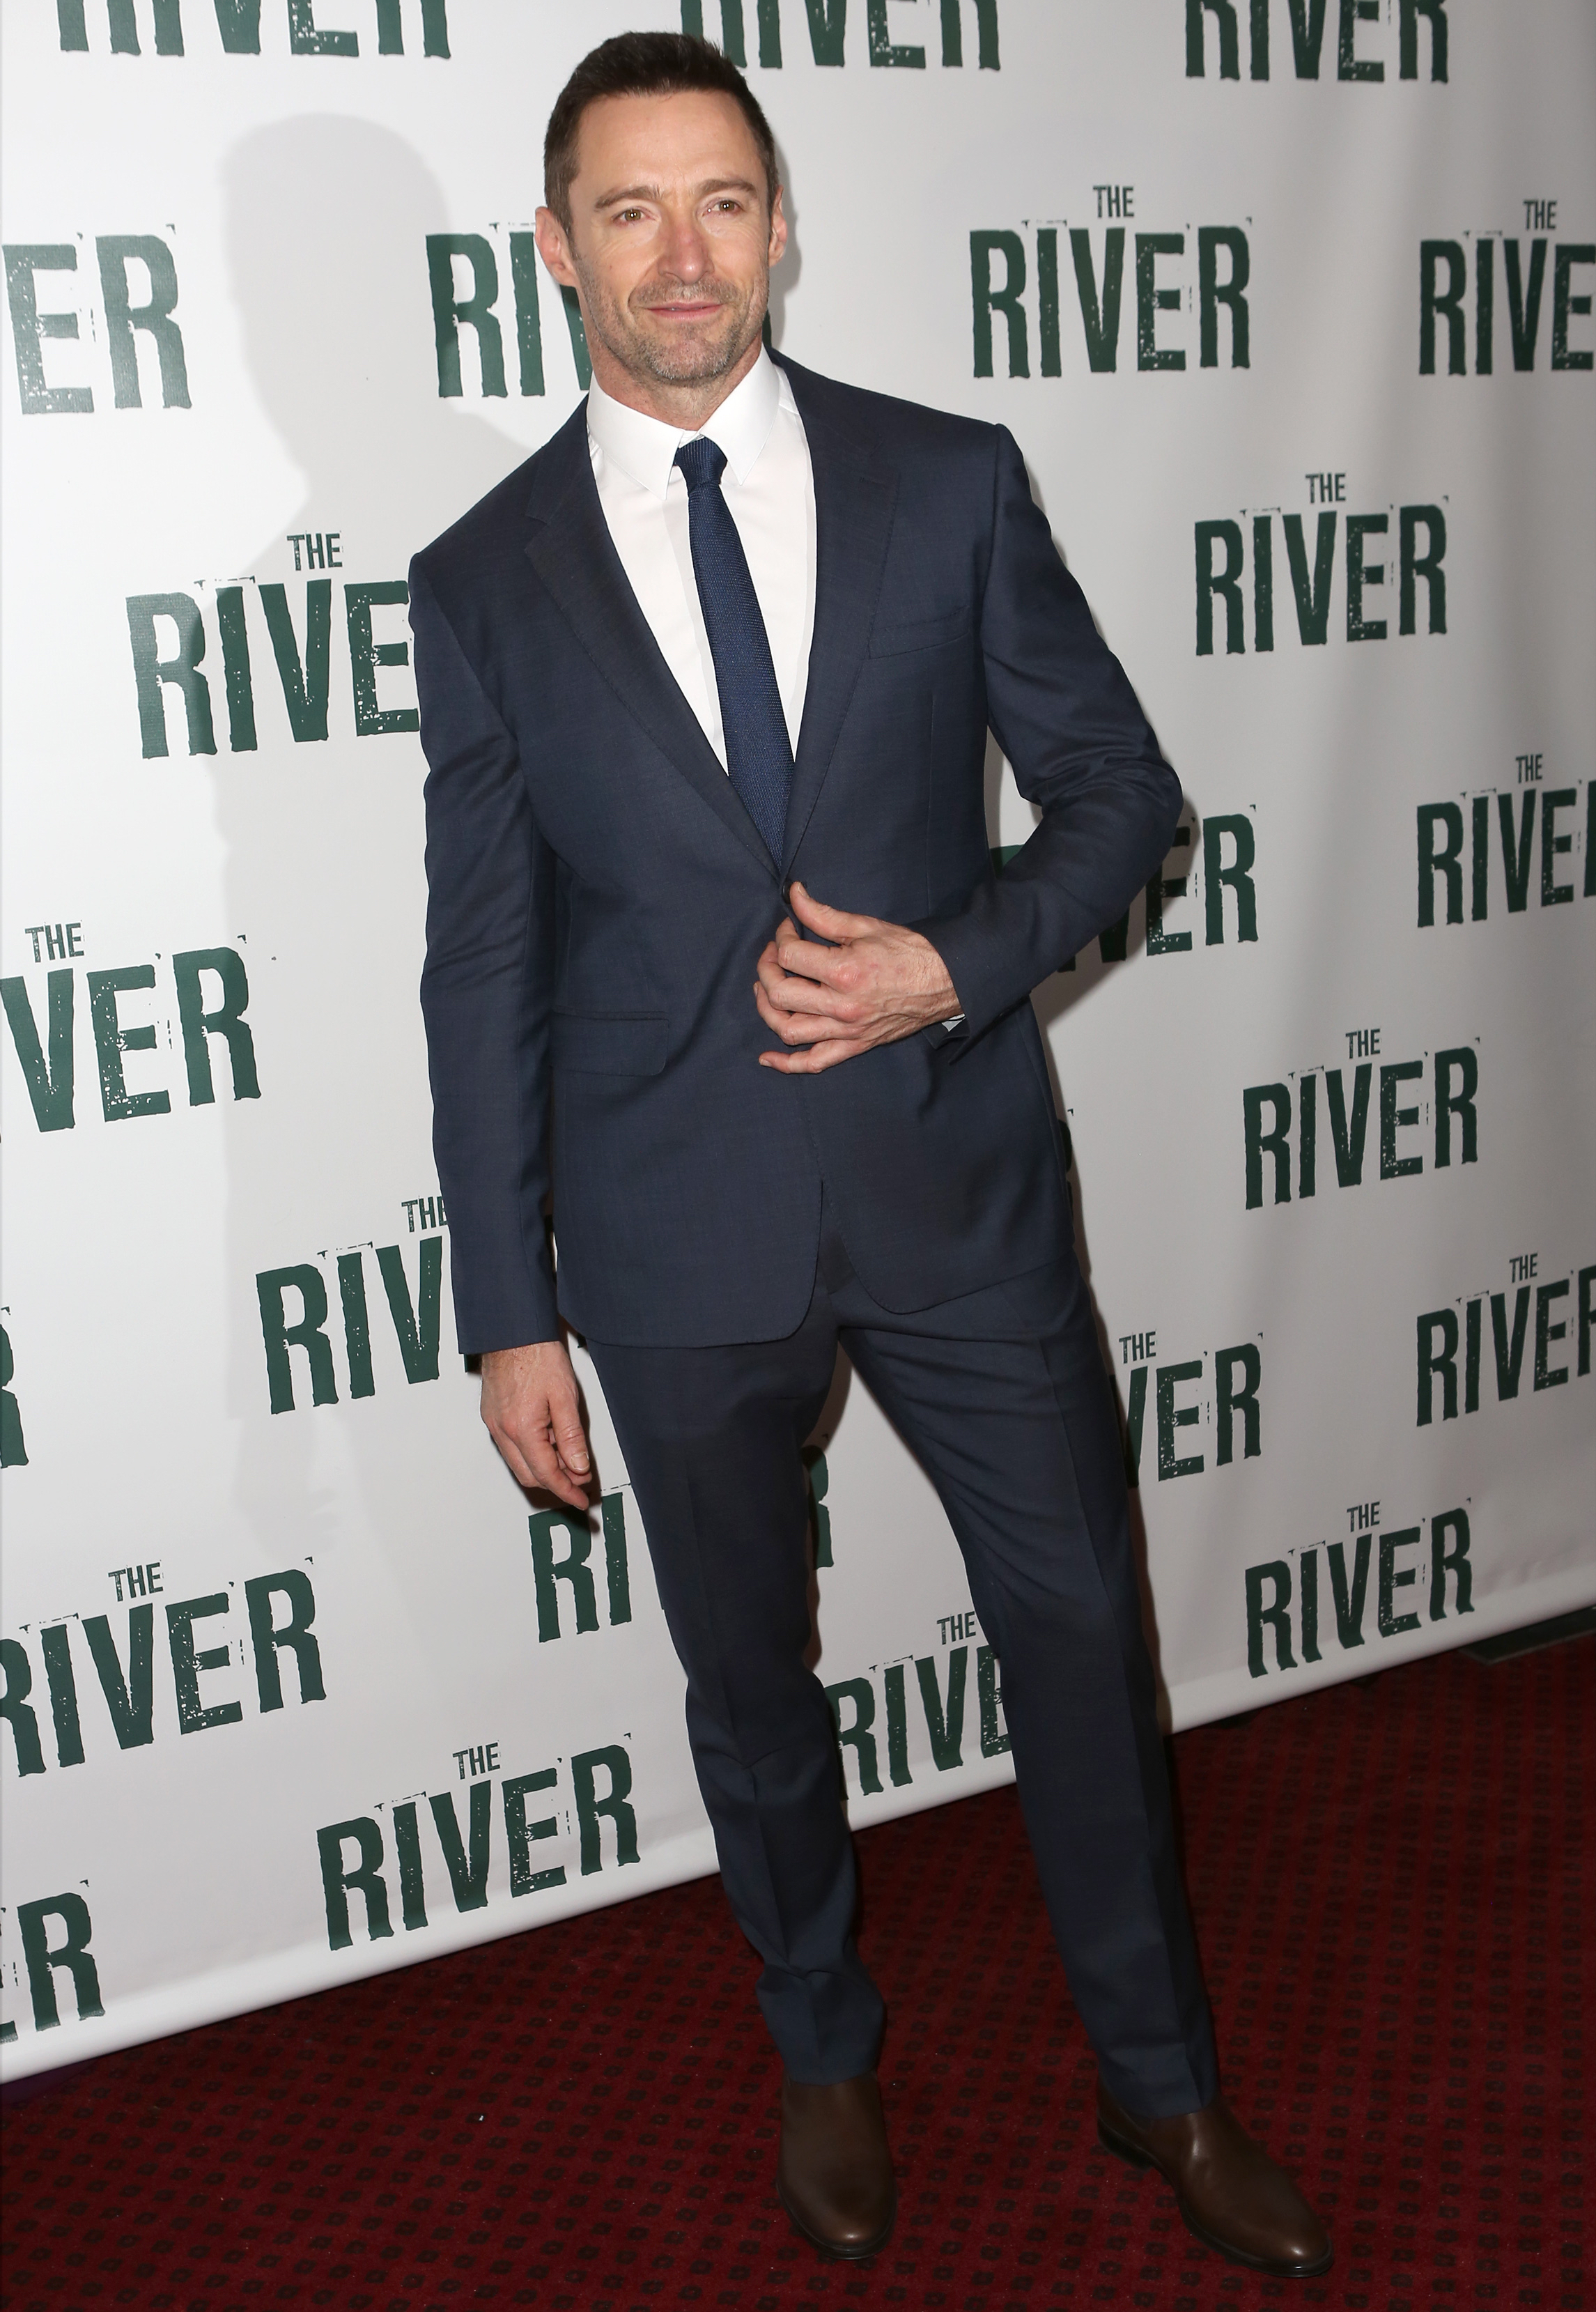 Hugh Jackman Wears Burberry Tailoring to 'The River' Opening Night